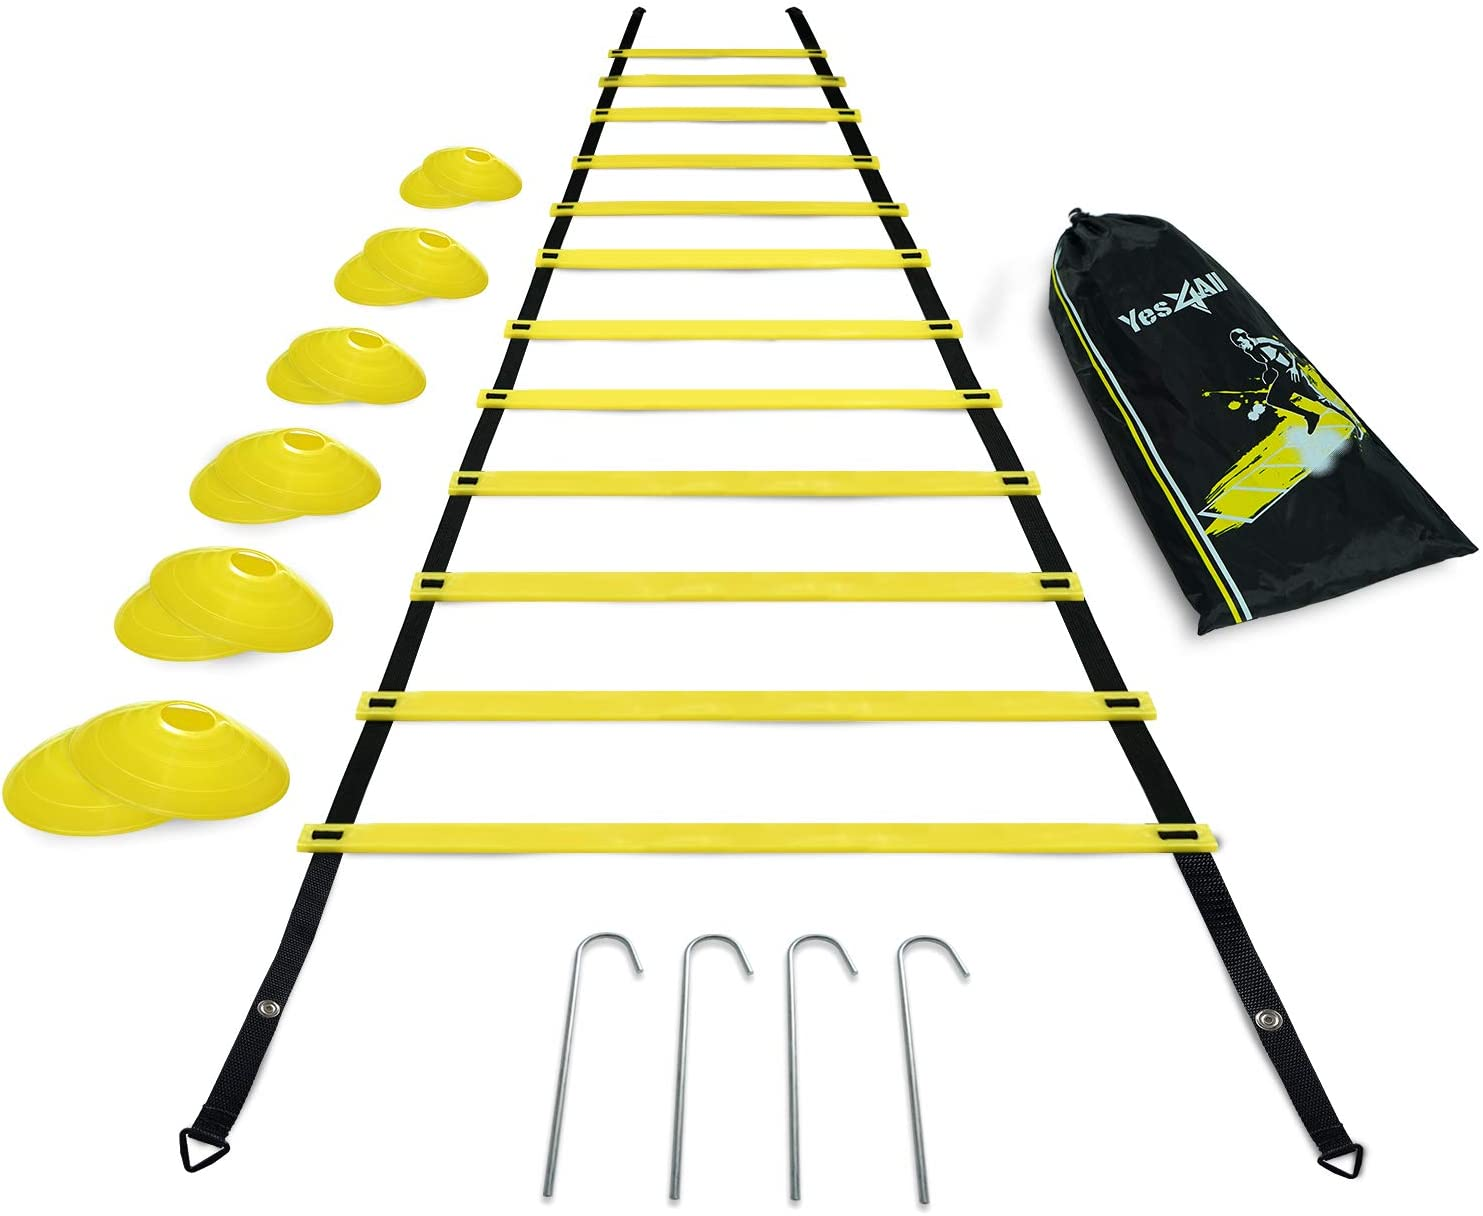 Yes4All Ultimate Combo Agility Ladder Training Set with Agility Ladder 12 Rungs & 12 Agility Cones, Agility Combo Speed Ladder and Balance Training Footwork for All Ages, Included Carry Bag